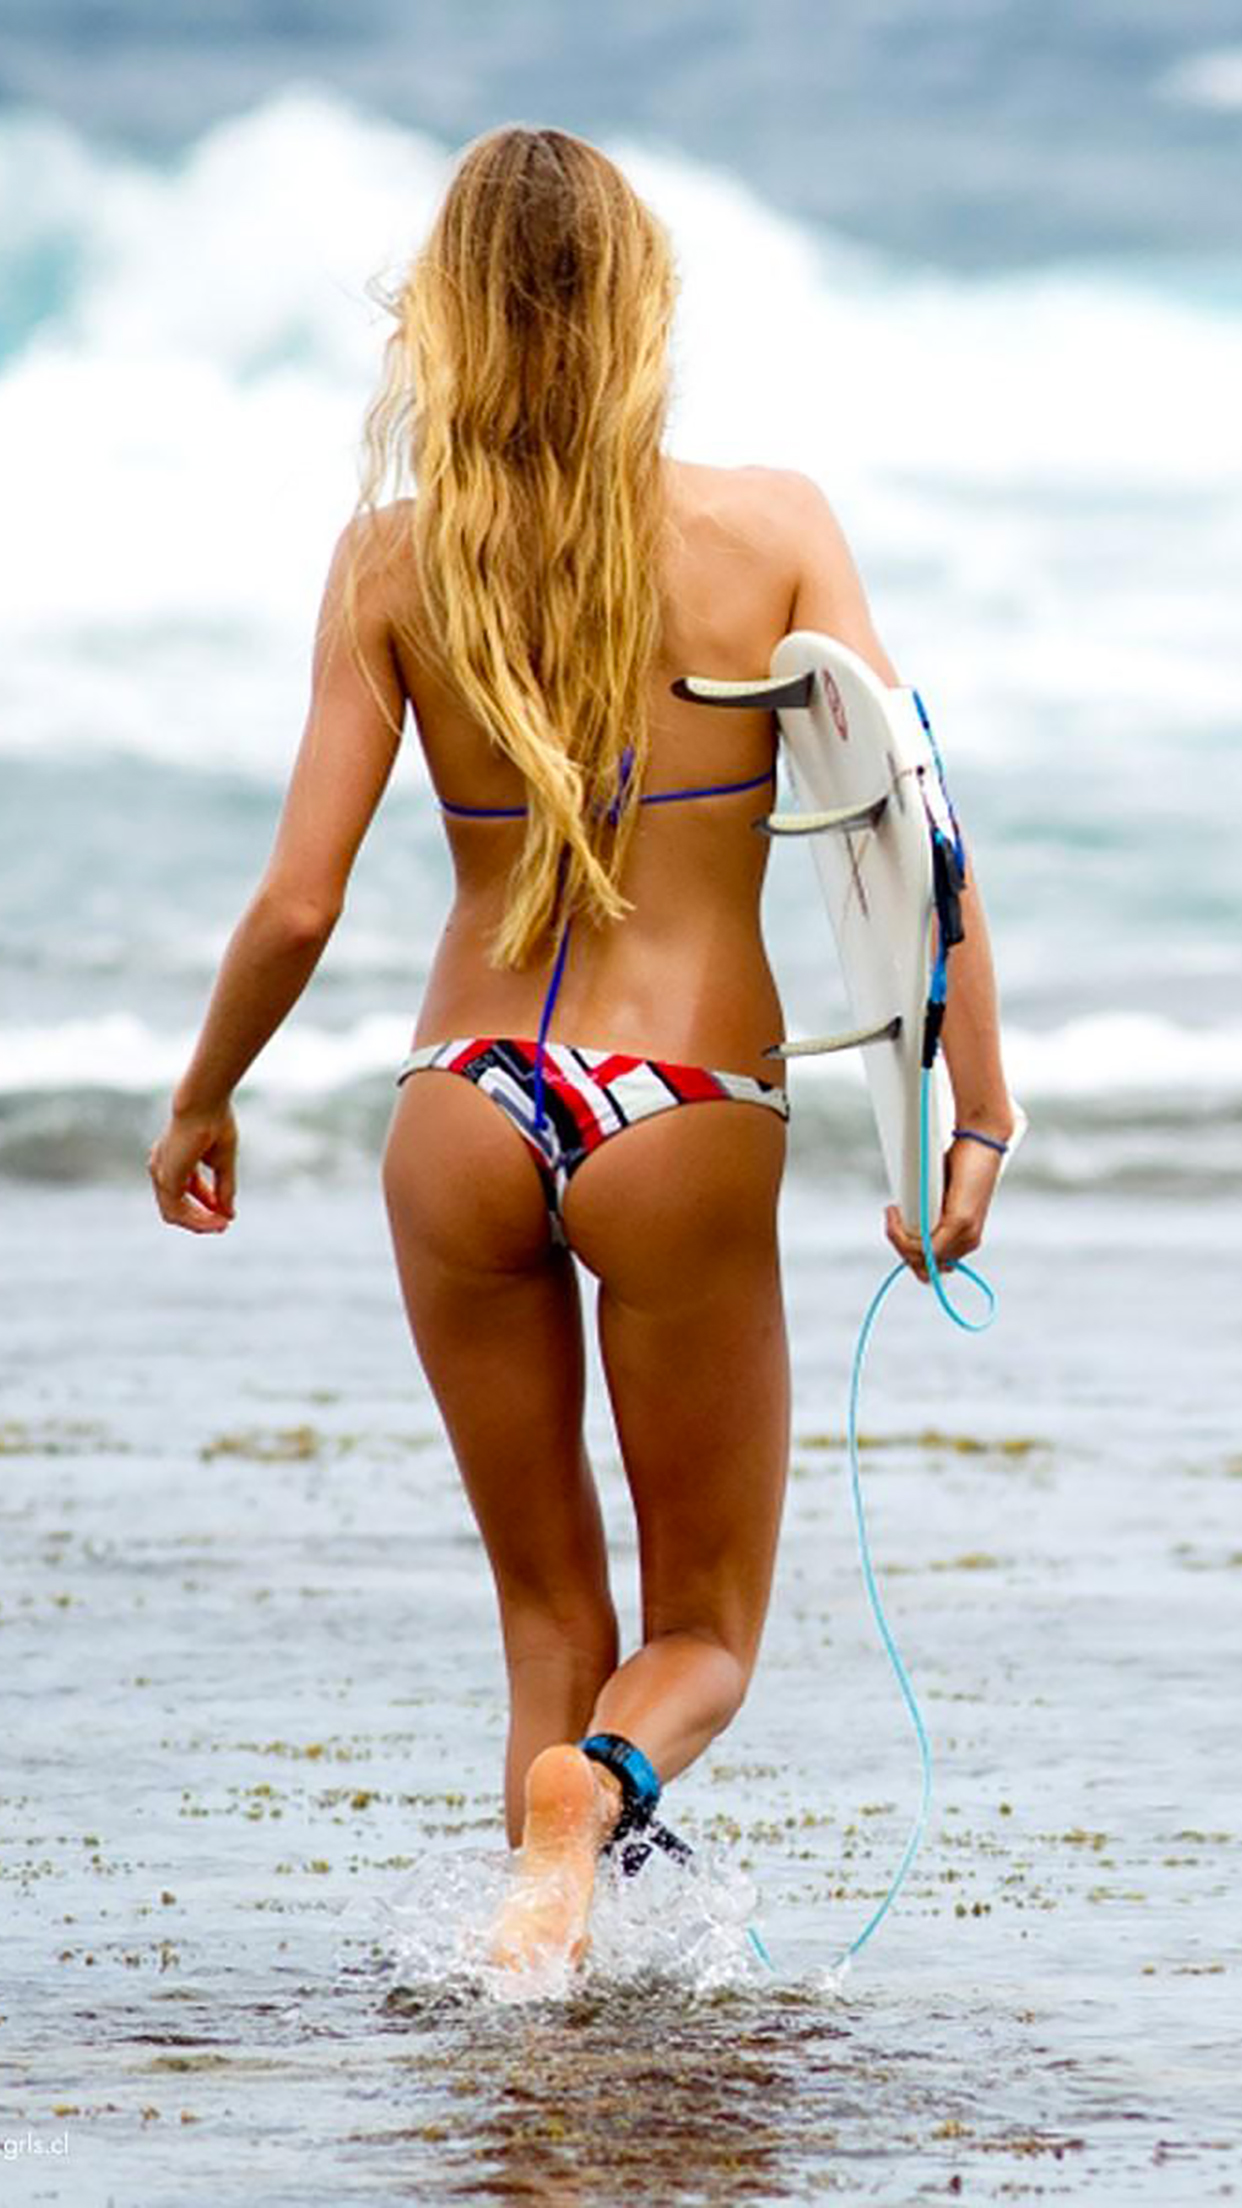 Alana Blanchard beach 3Wallpapers iPhone Parallax Alana Blanchard beach